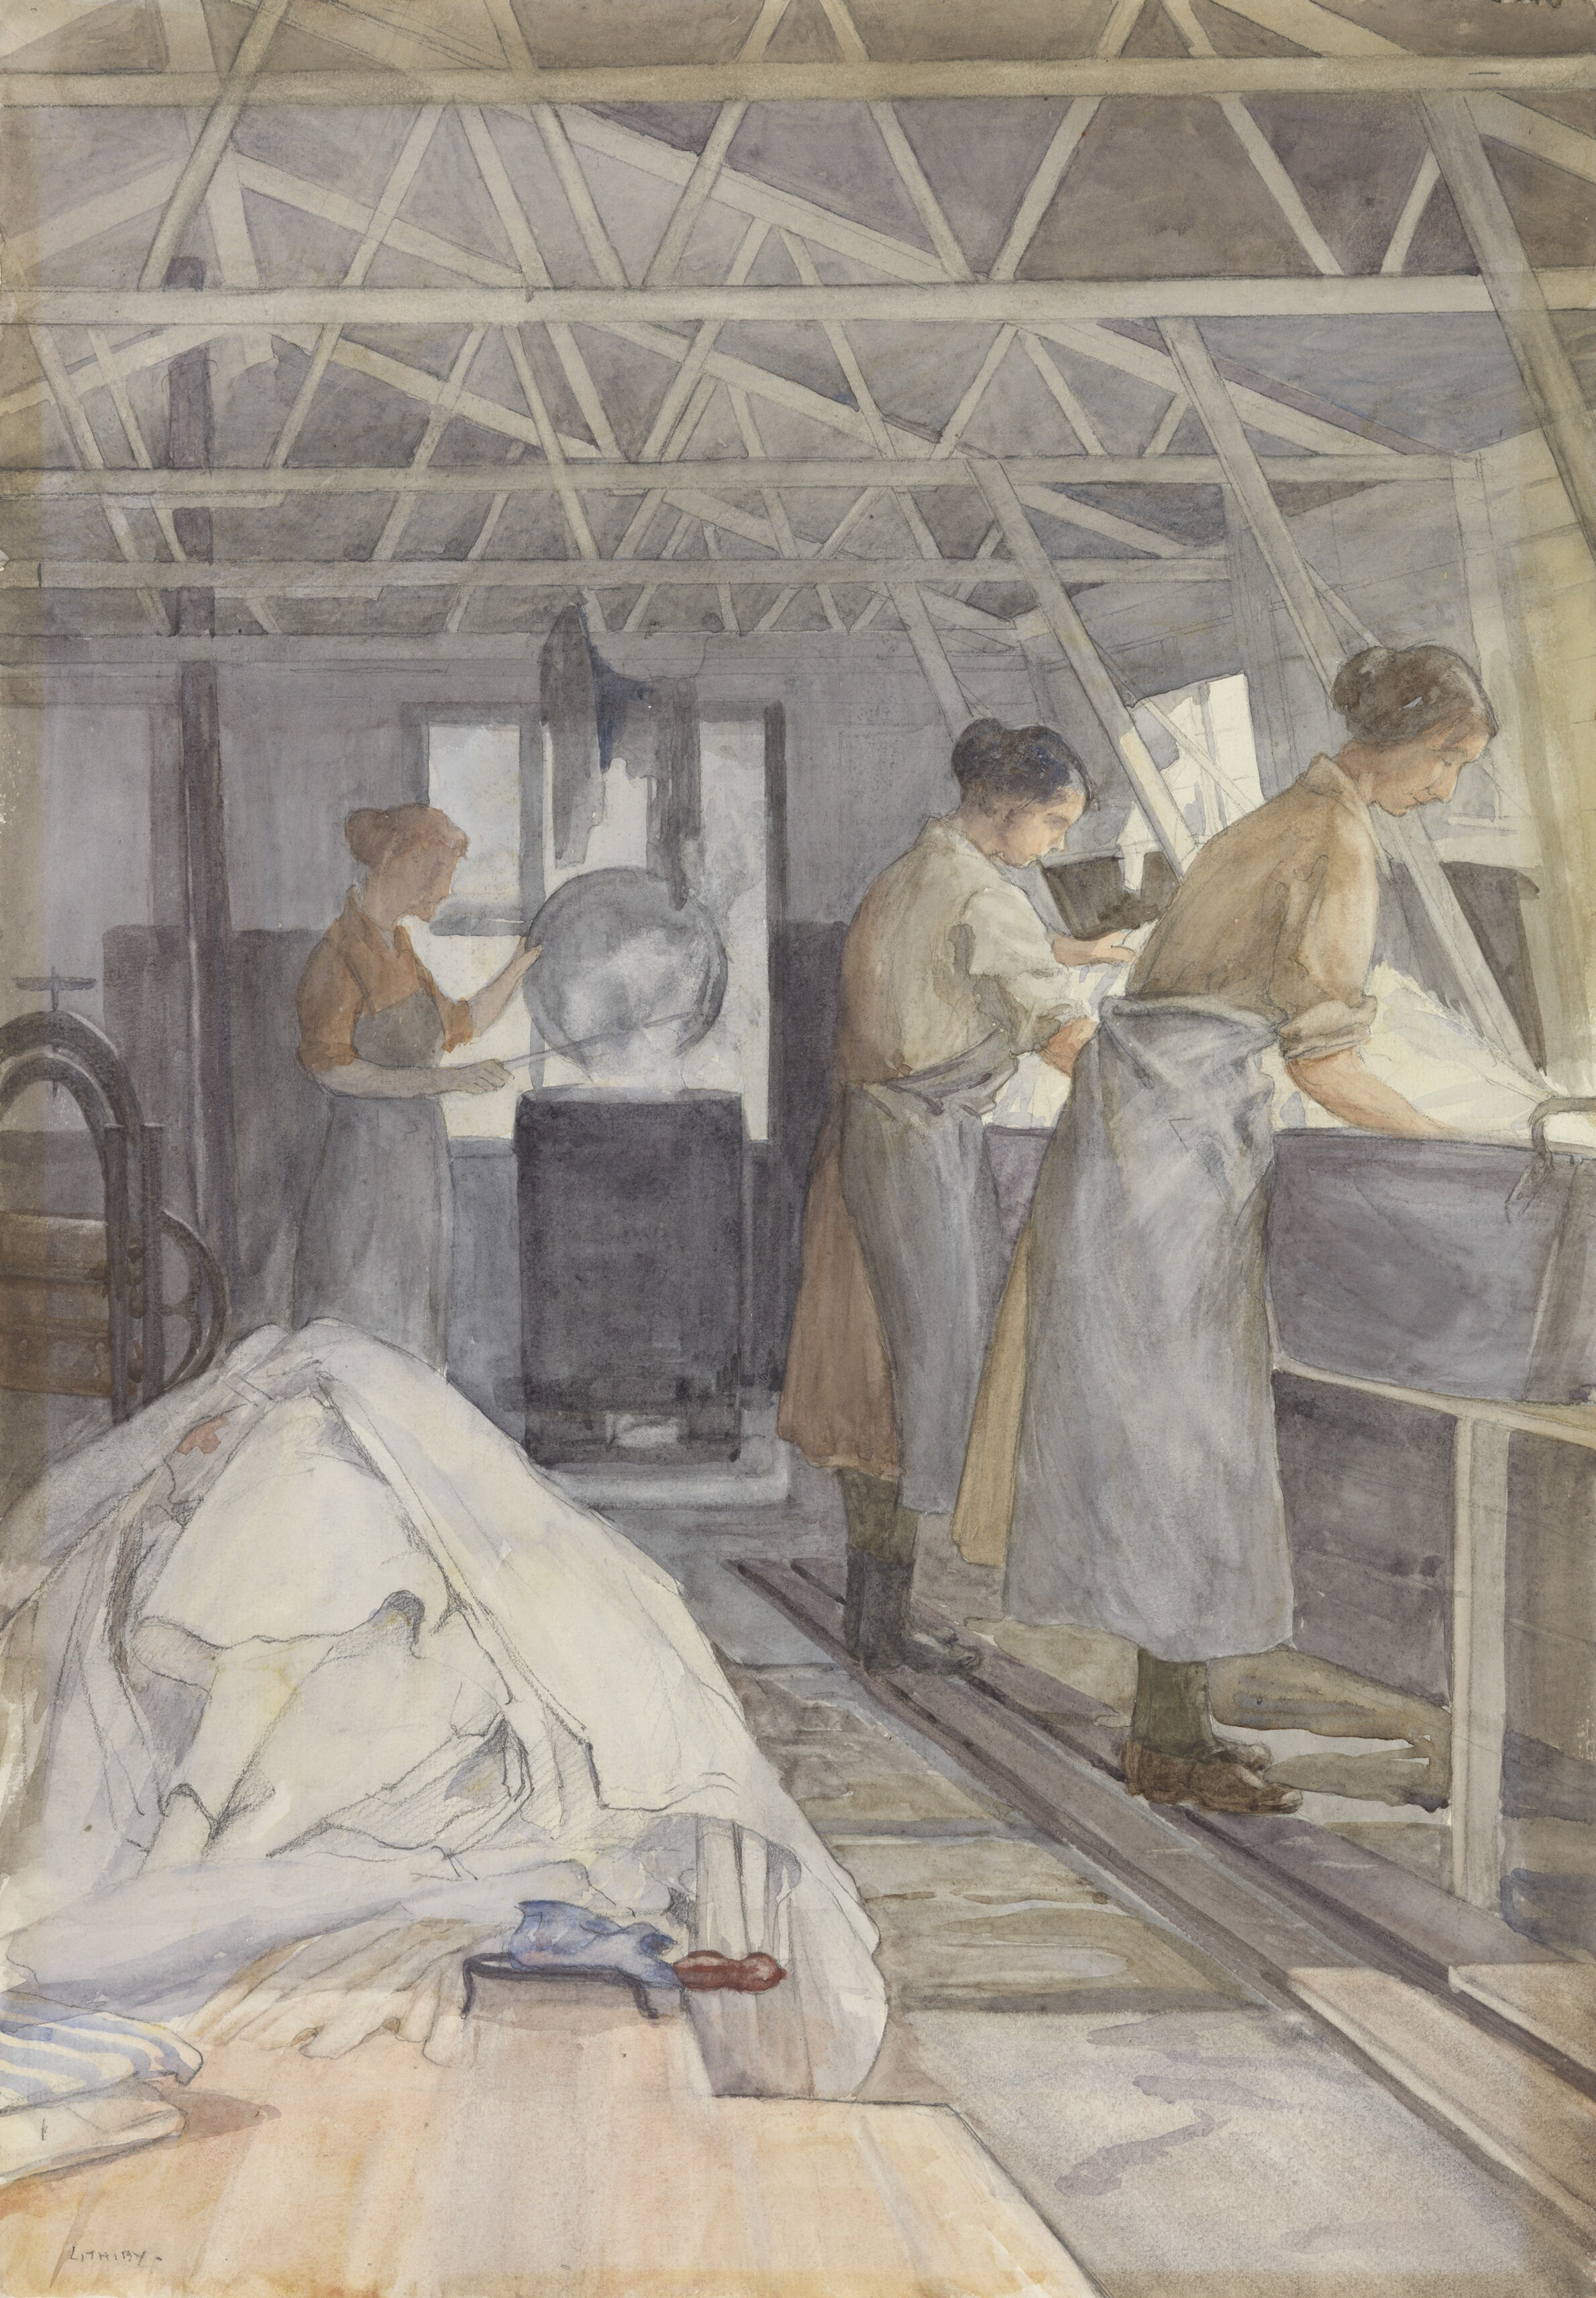 An Improvised Laundry - Princess Beatrice Camp Beaumarais, Calais by Beatrice Lithiby (OBE) [Public domain], via Wikimedia Commons